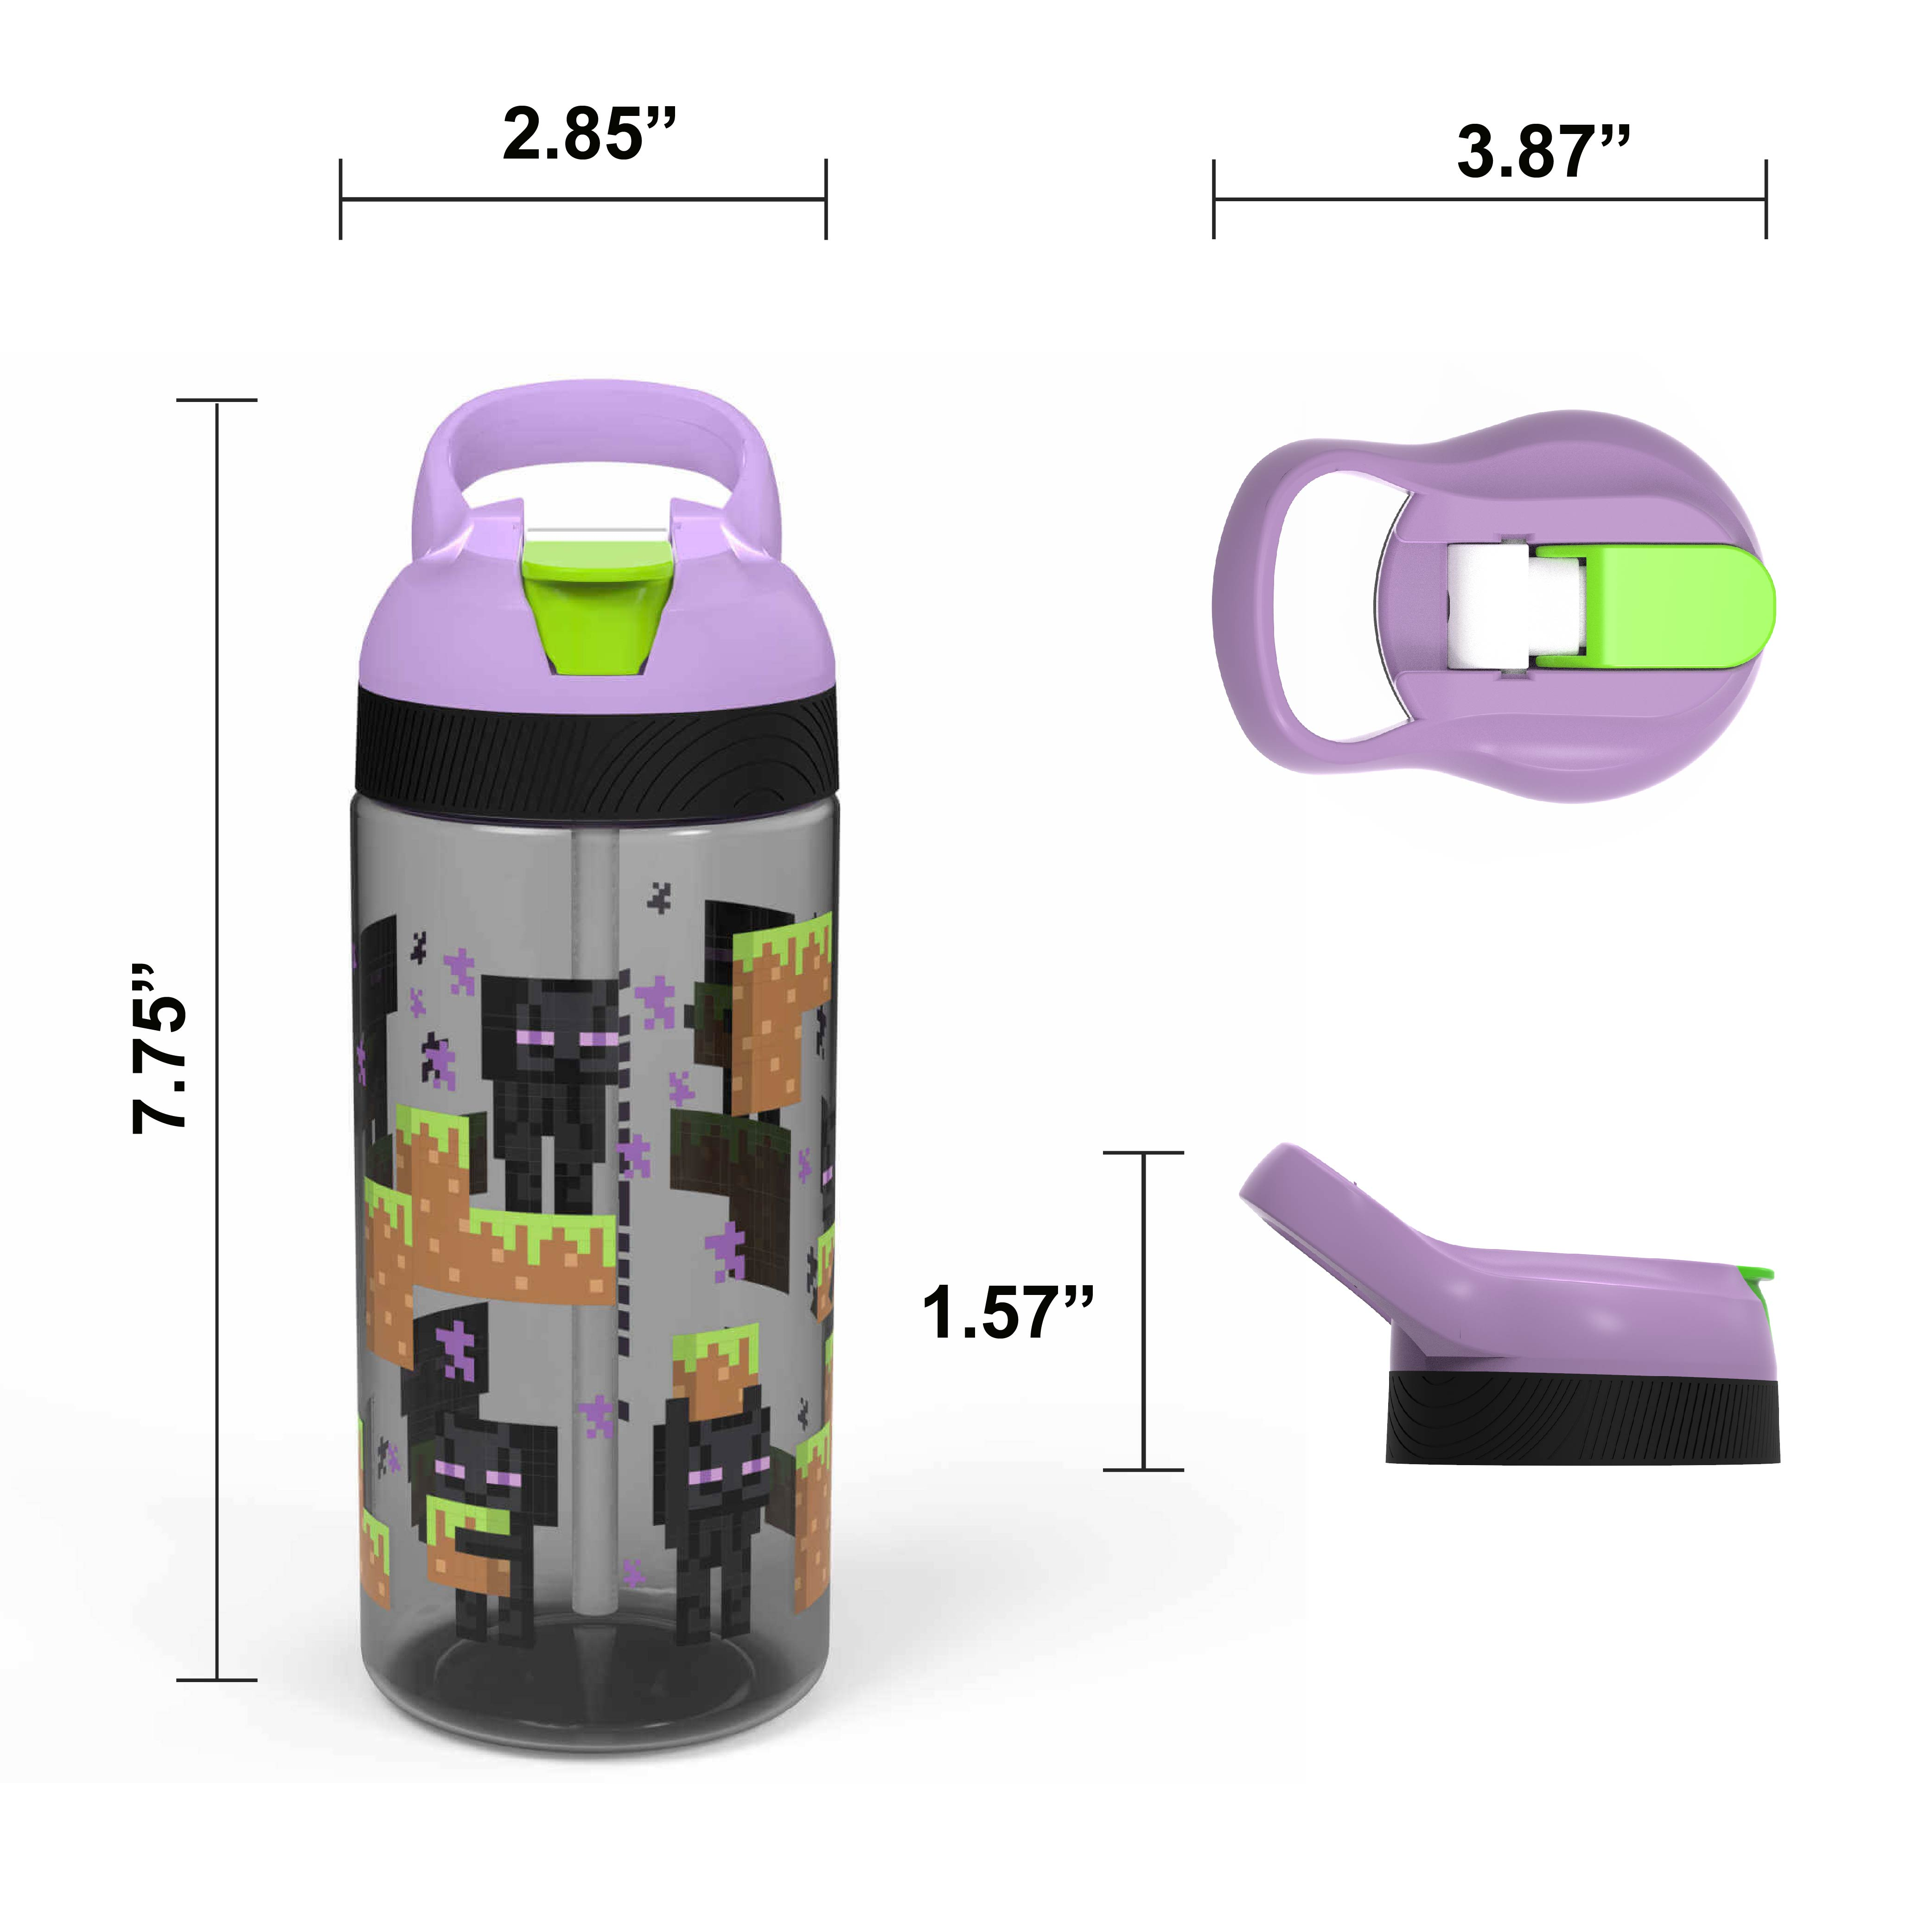 Minecraft Kid's Water Bottle and Sandwich Container Lunch Set, Steve and Alex, 2-piece set slideshow image 12